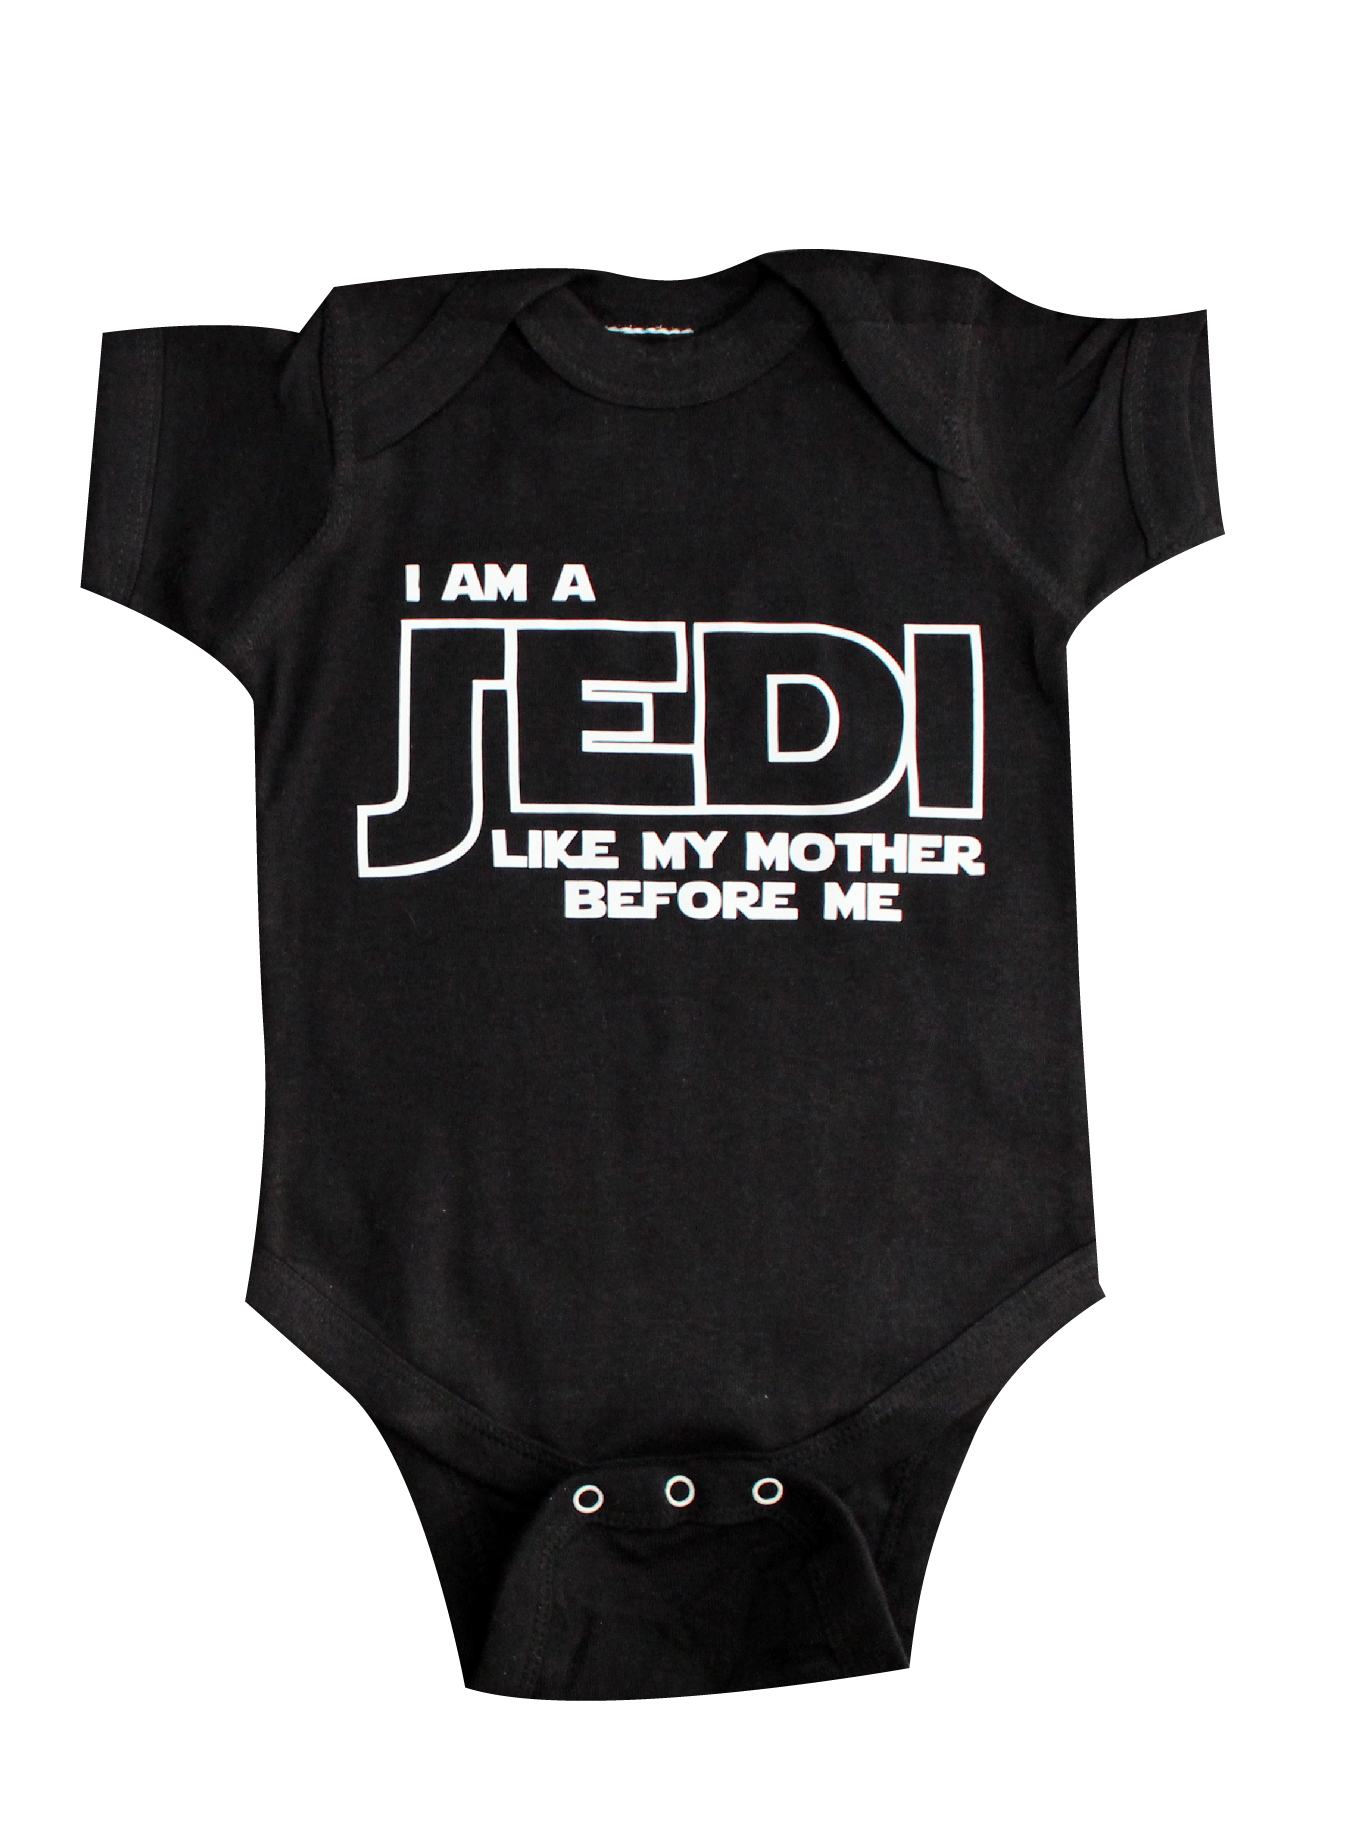 a654dd1cb I am a Jedi just like my MOTHER, Baby Clothing, Funny Baby Clothing ...